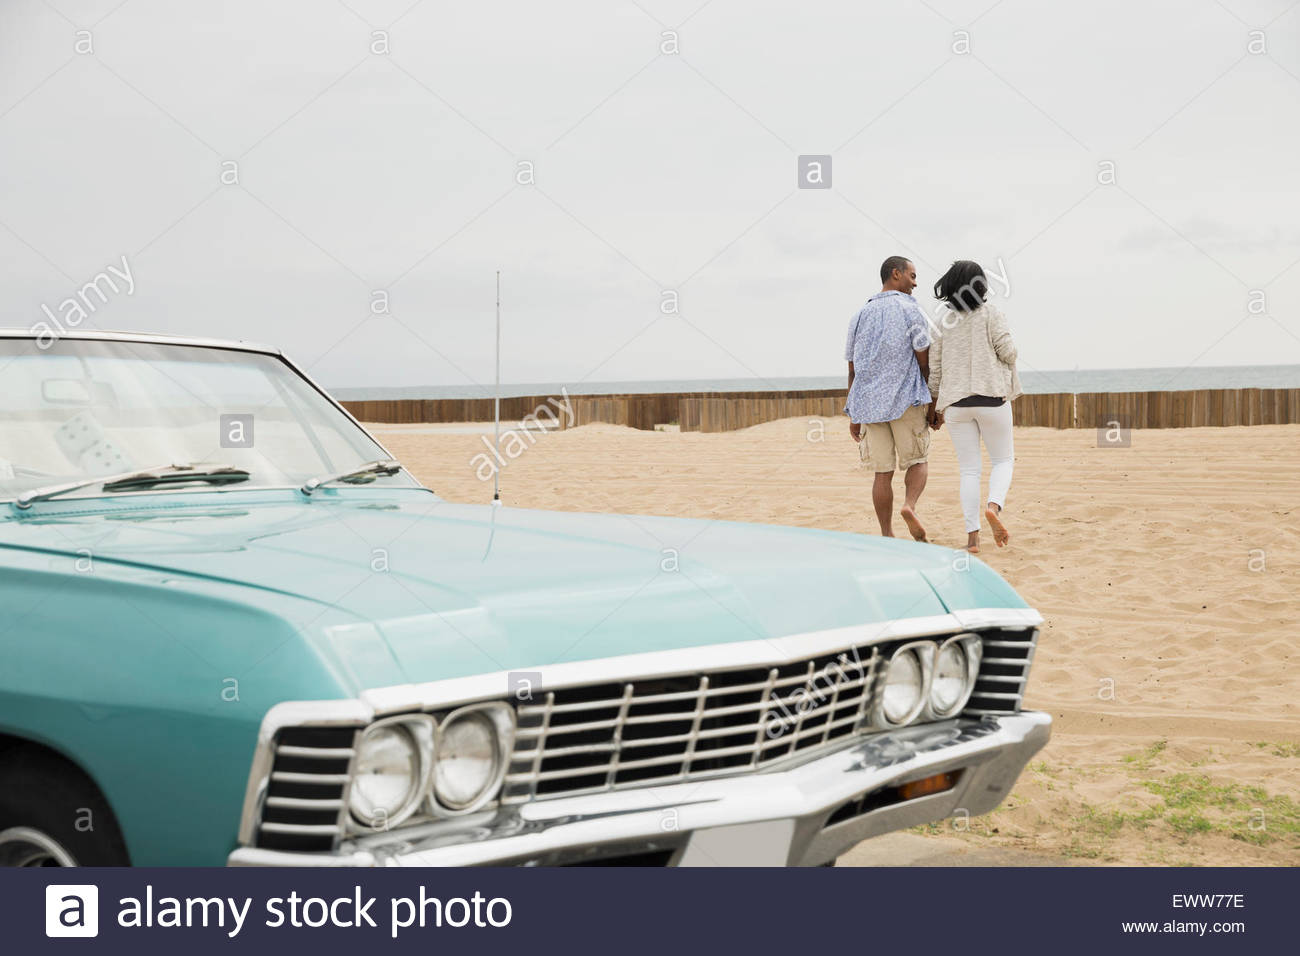 Couple walking from convertible onto beach - Stock Image